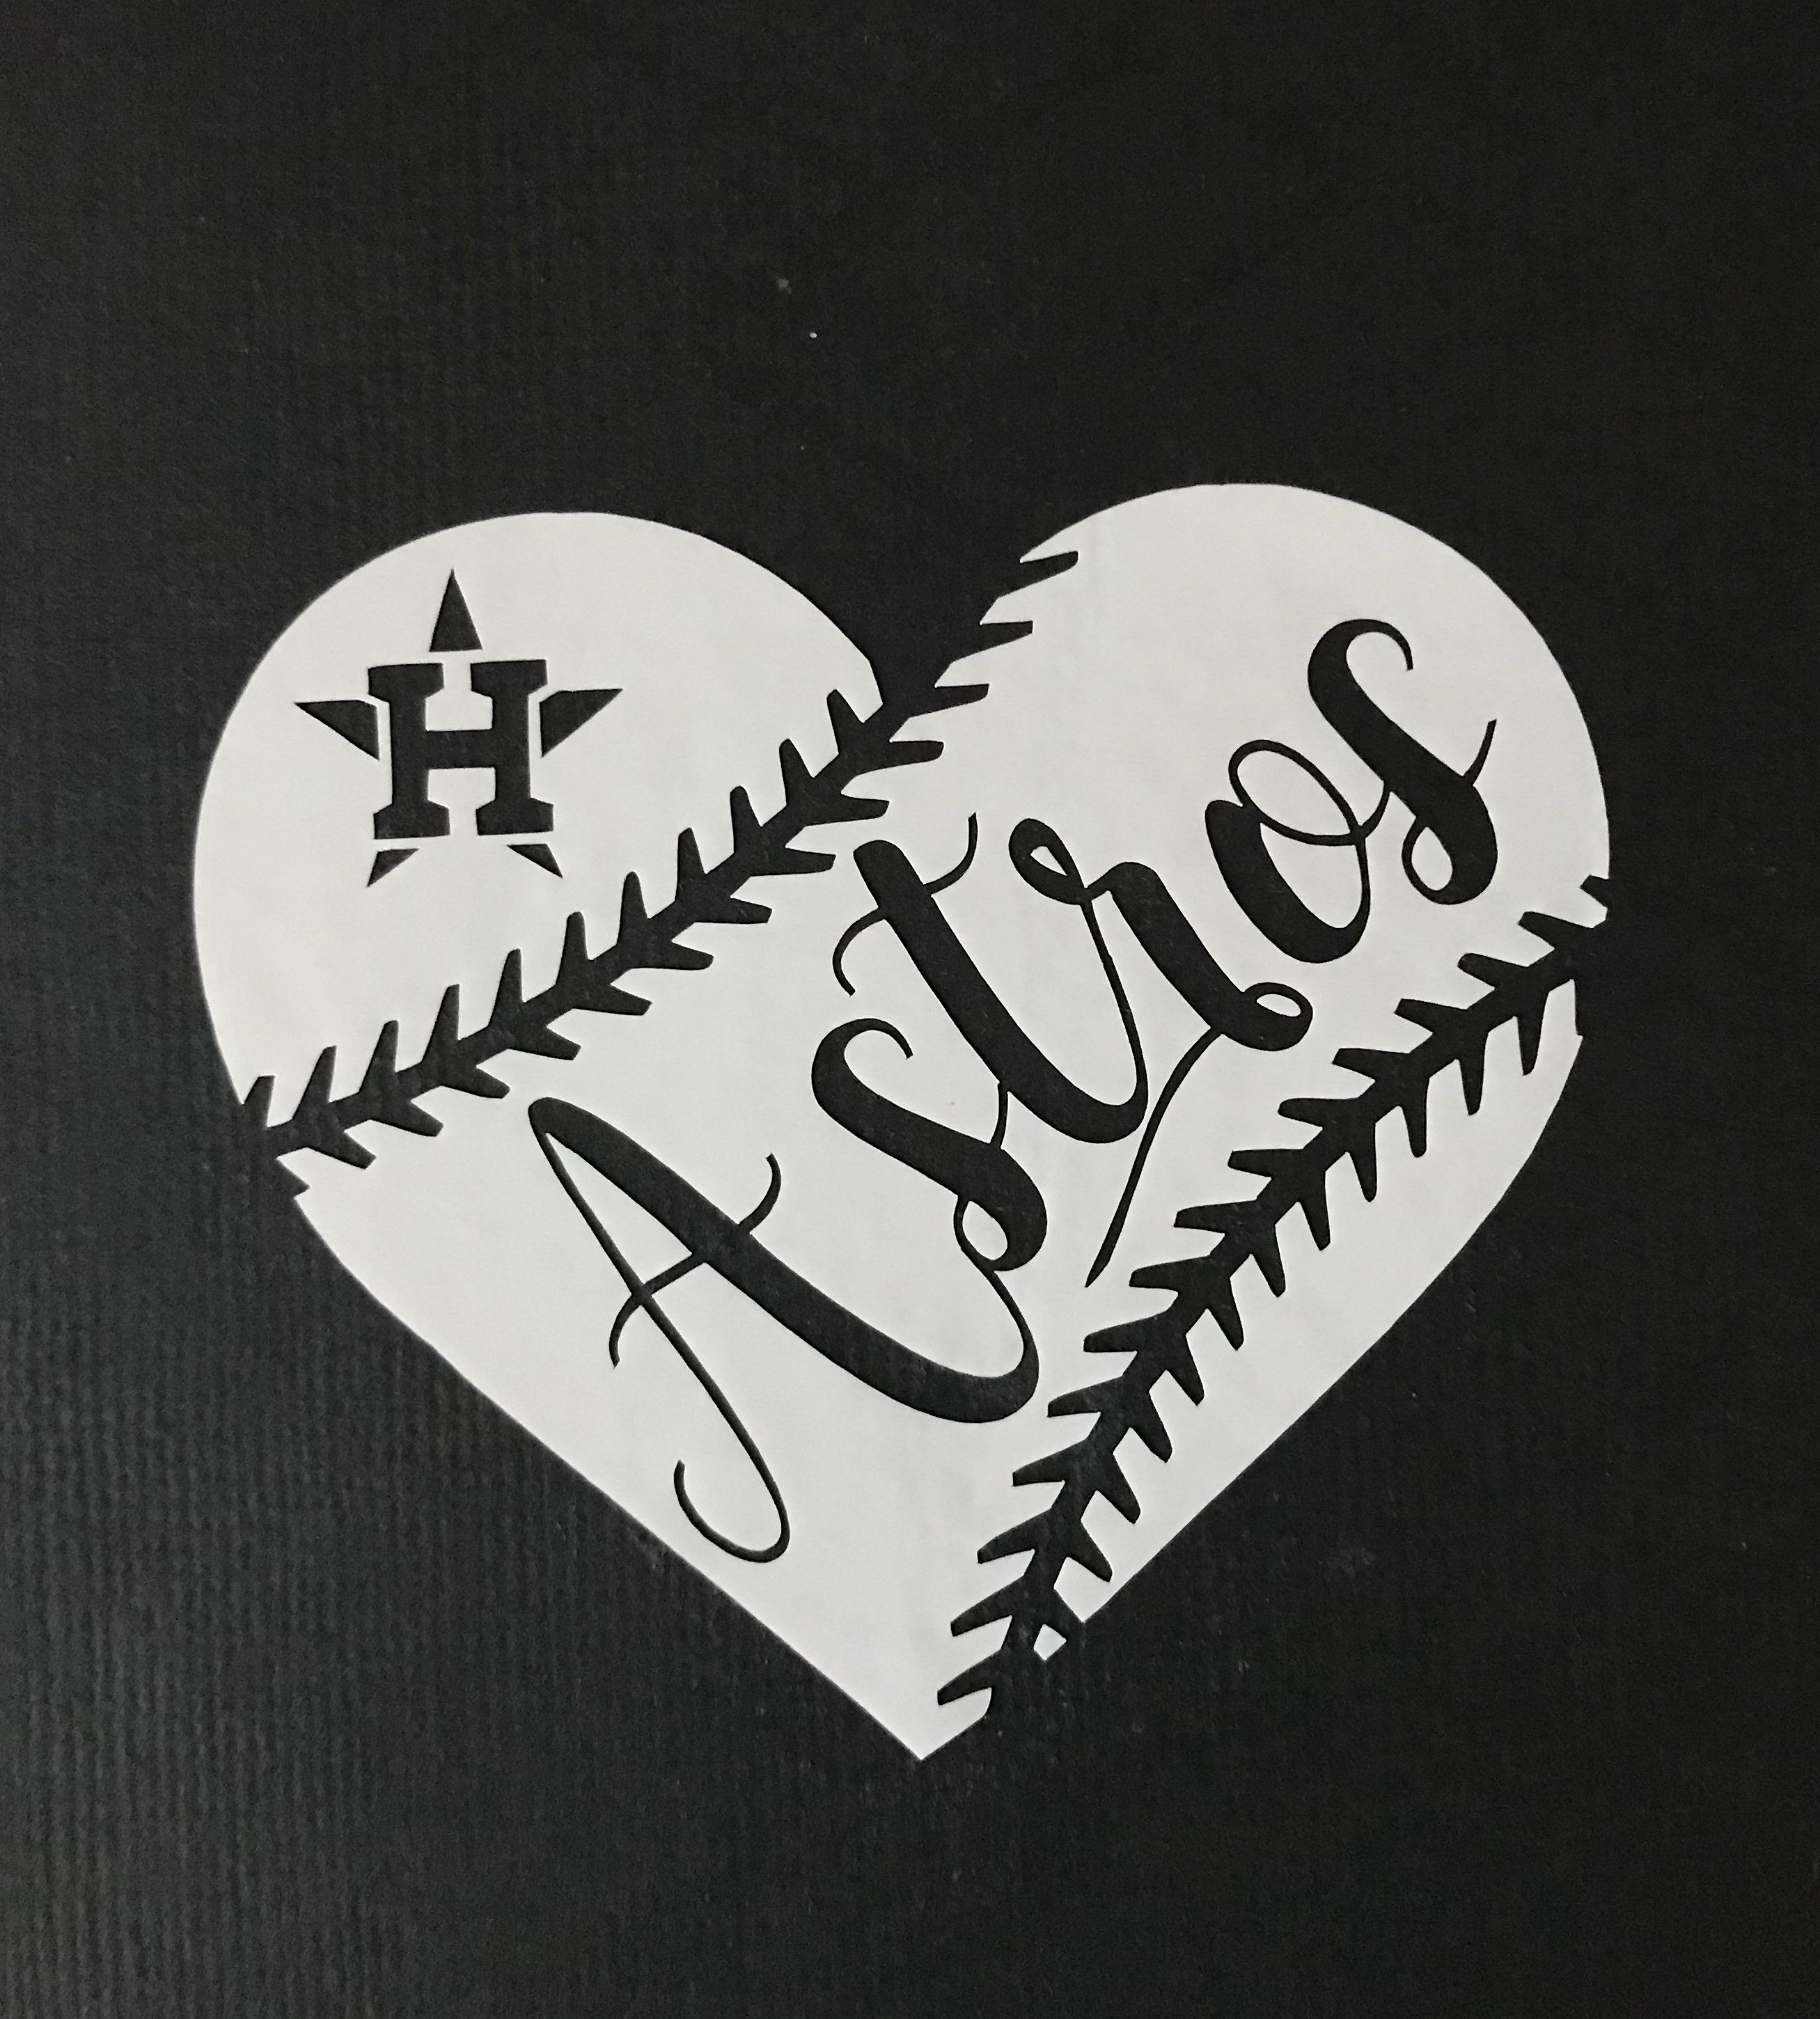 Download Huston Astros Baseball Heart Vinyl - Car Decal - Bumper ...